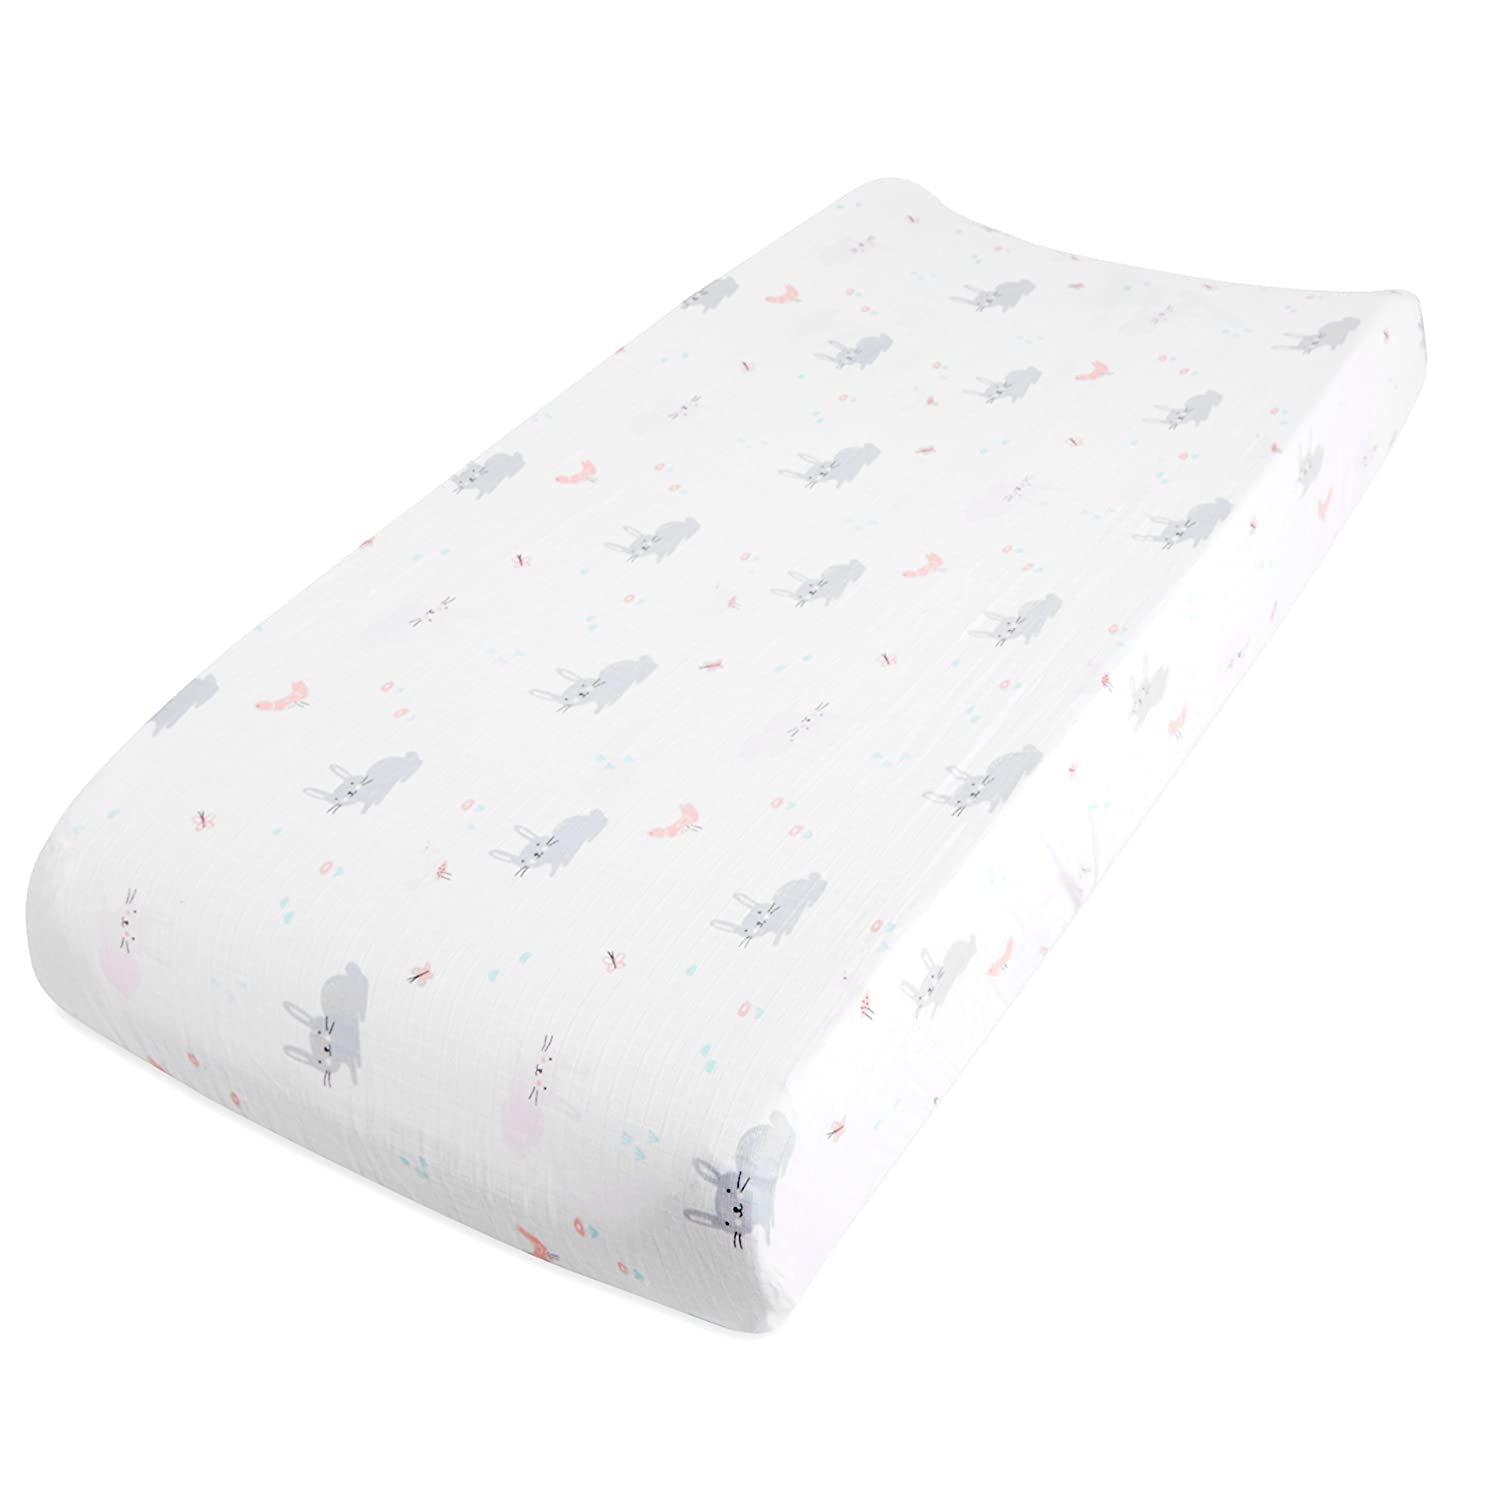 aden by aden + anais Changing Pad Cover, Pastoral S869